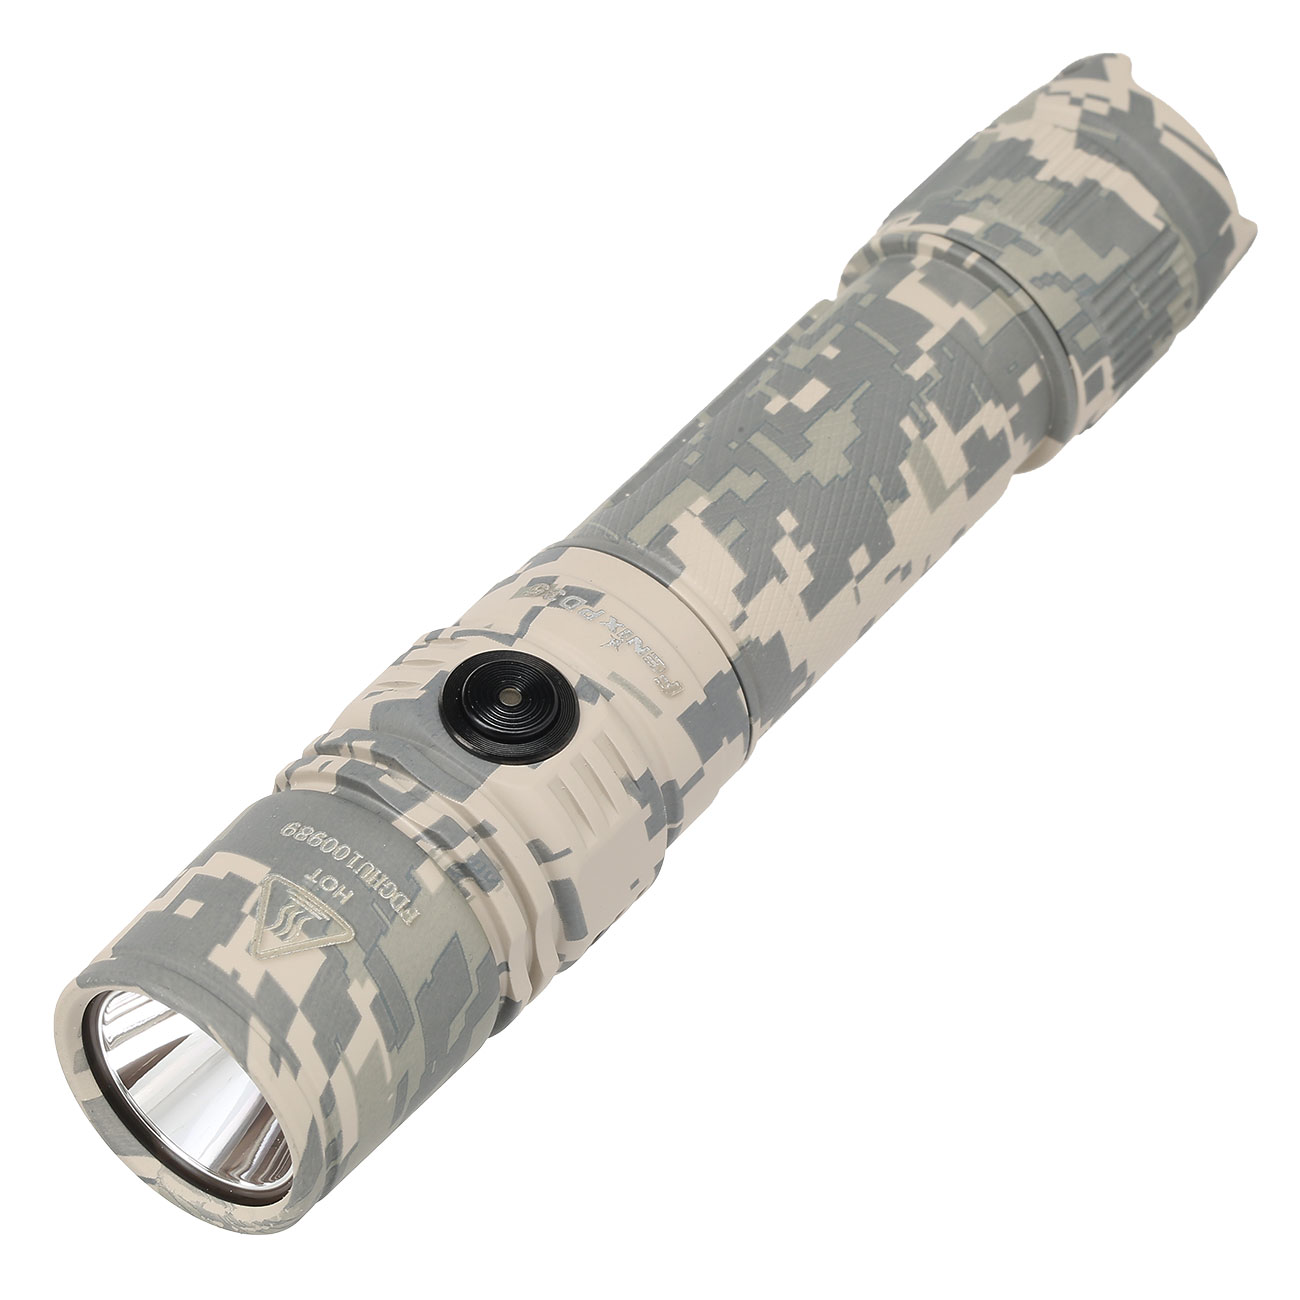 Fenix LED Taschenlampe PD35 V2.0 digital camo 1000 Lumen